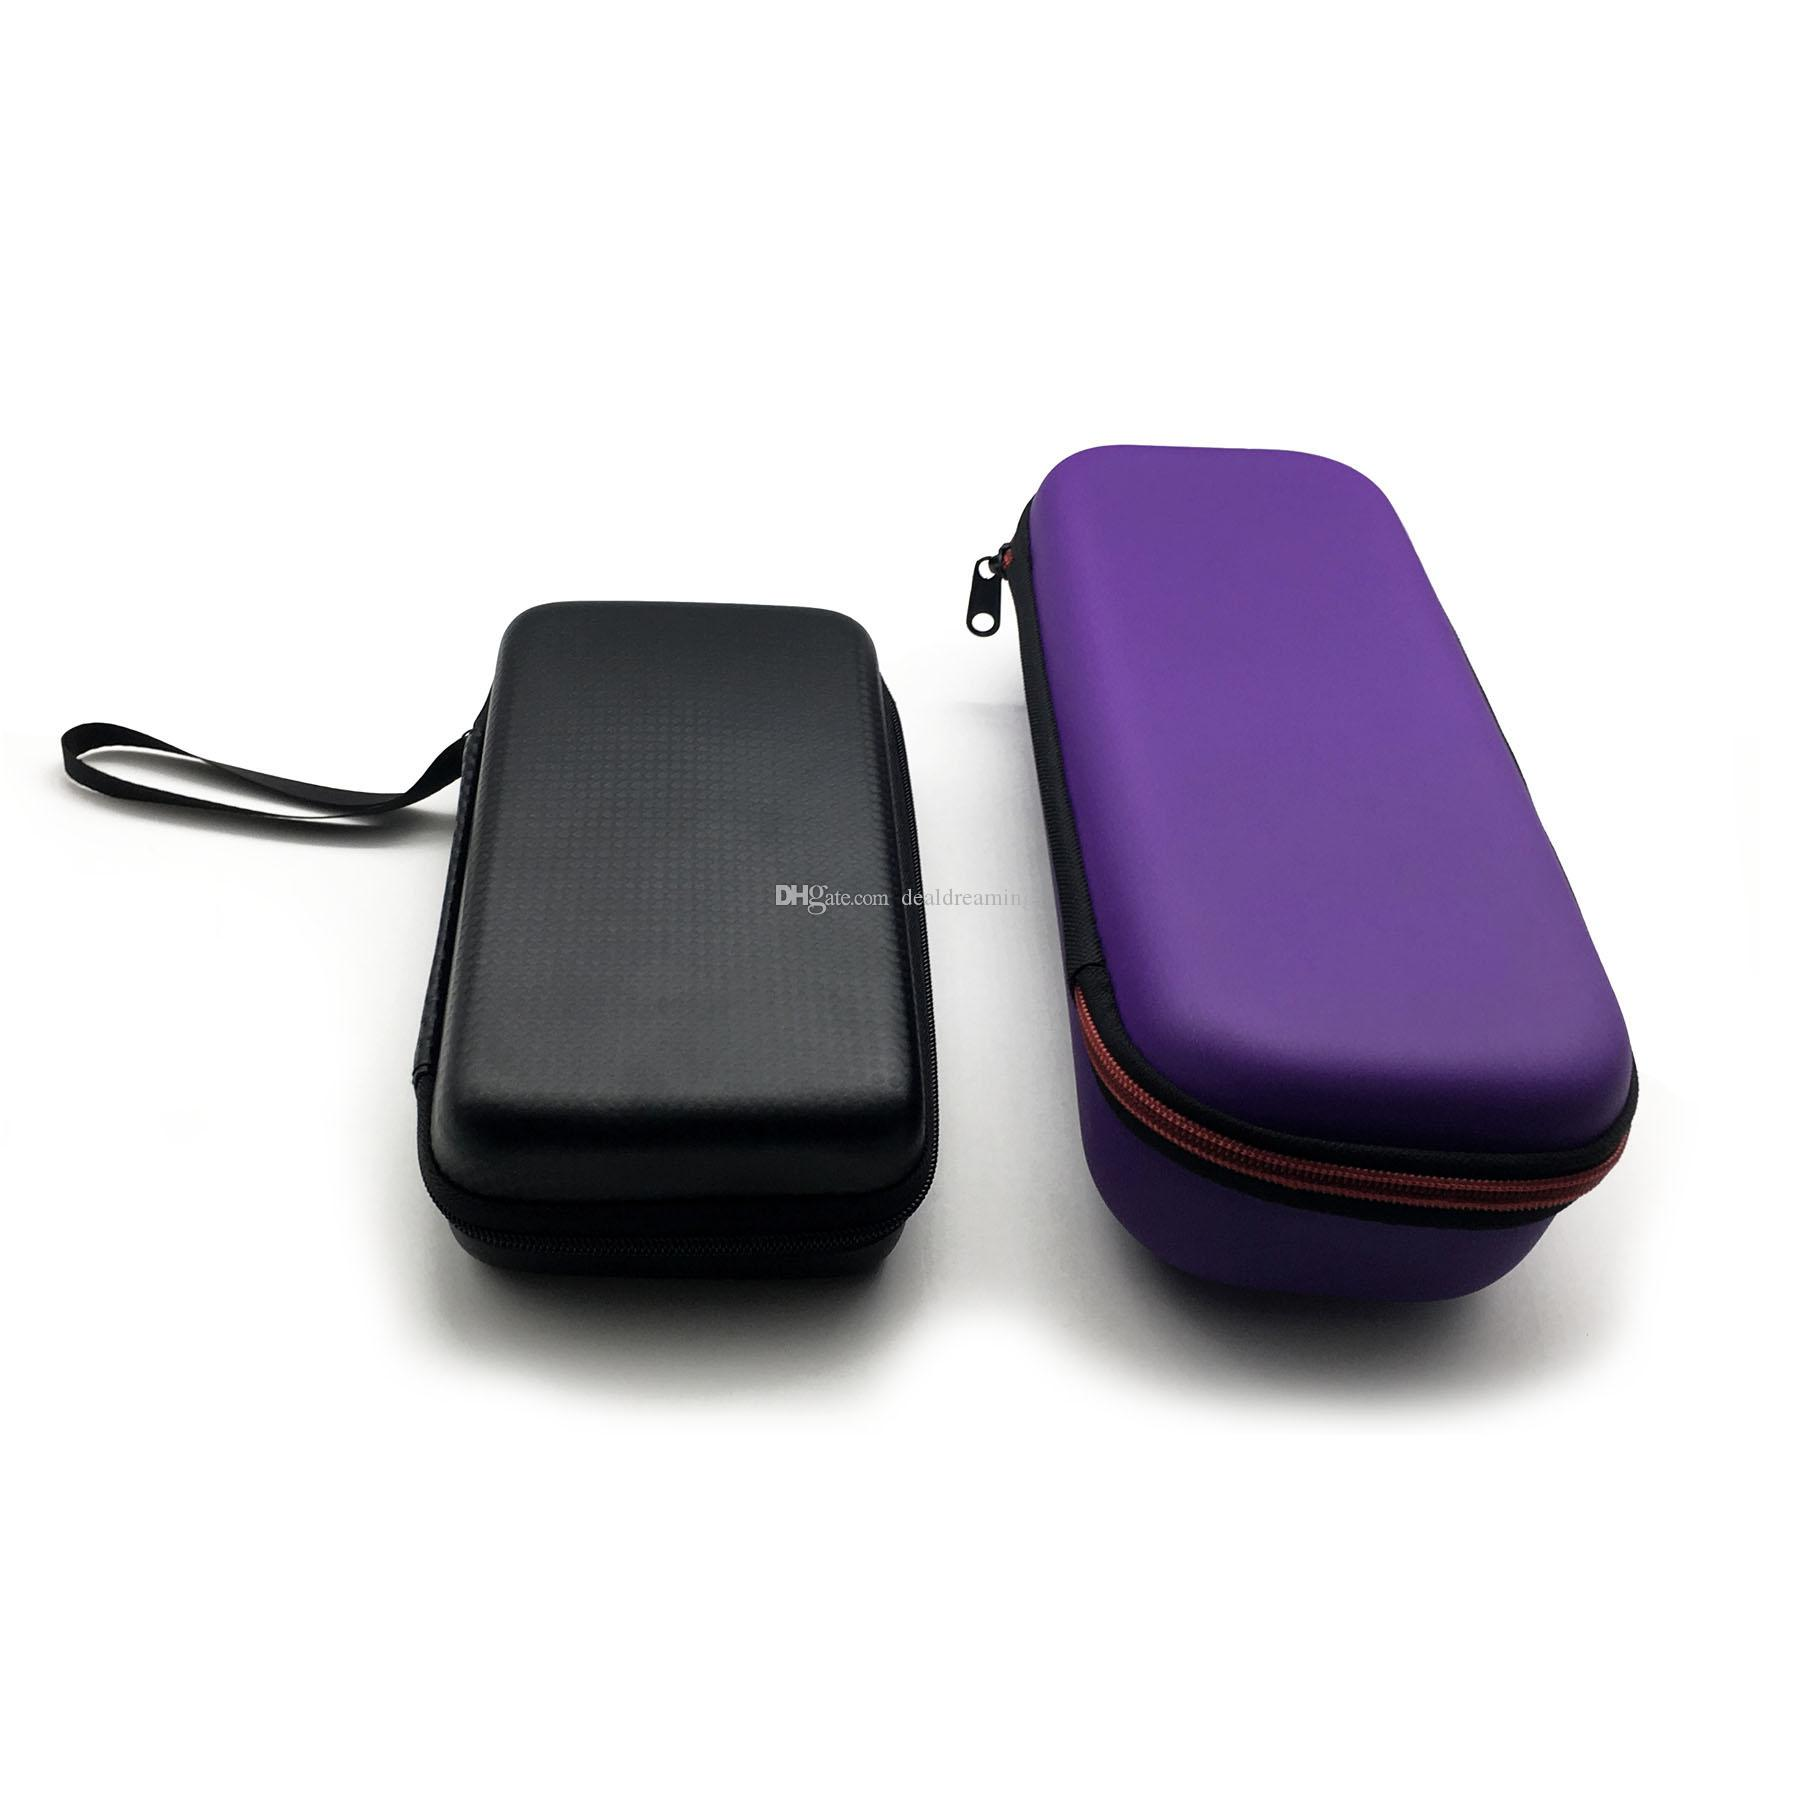 Leather Zipper Cases Carrying Case Carry Storage Box for Cosmetic Tools E Cig Atomizer Evod Battery Ego Kit